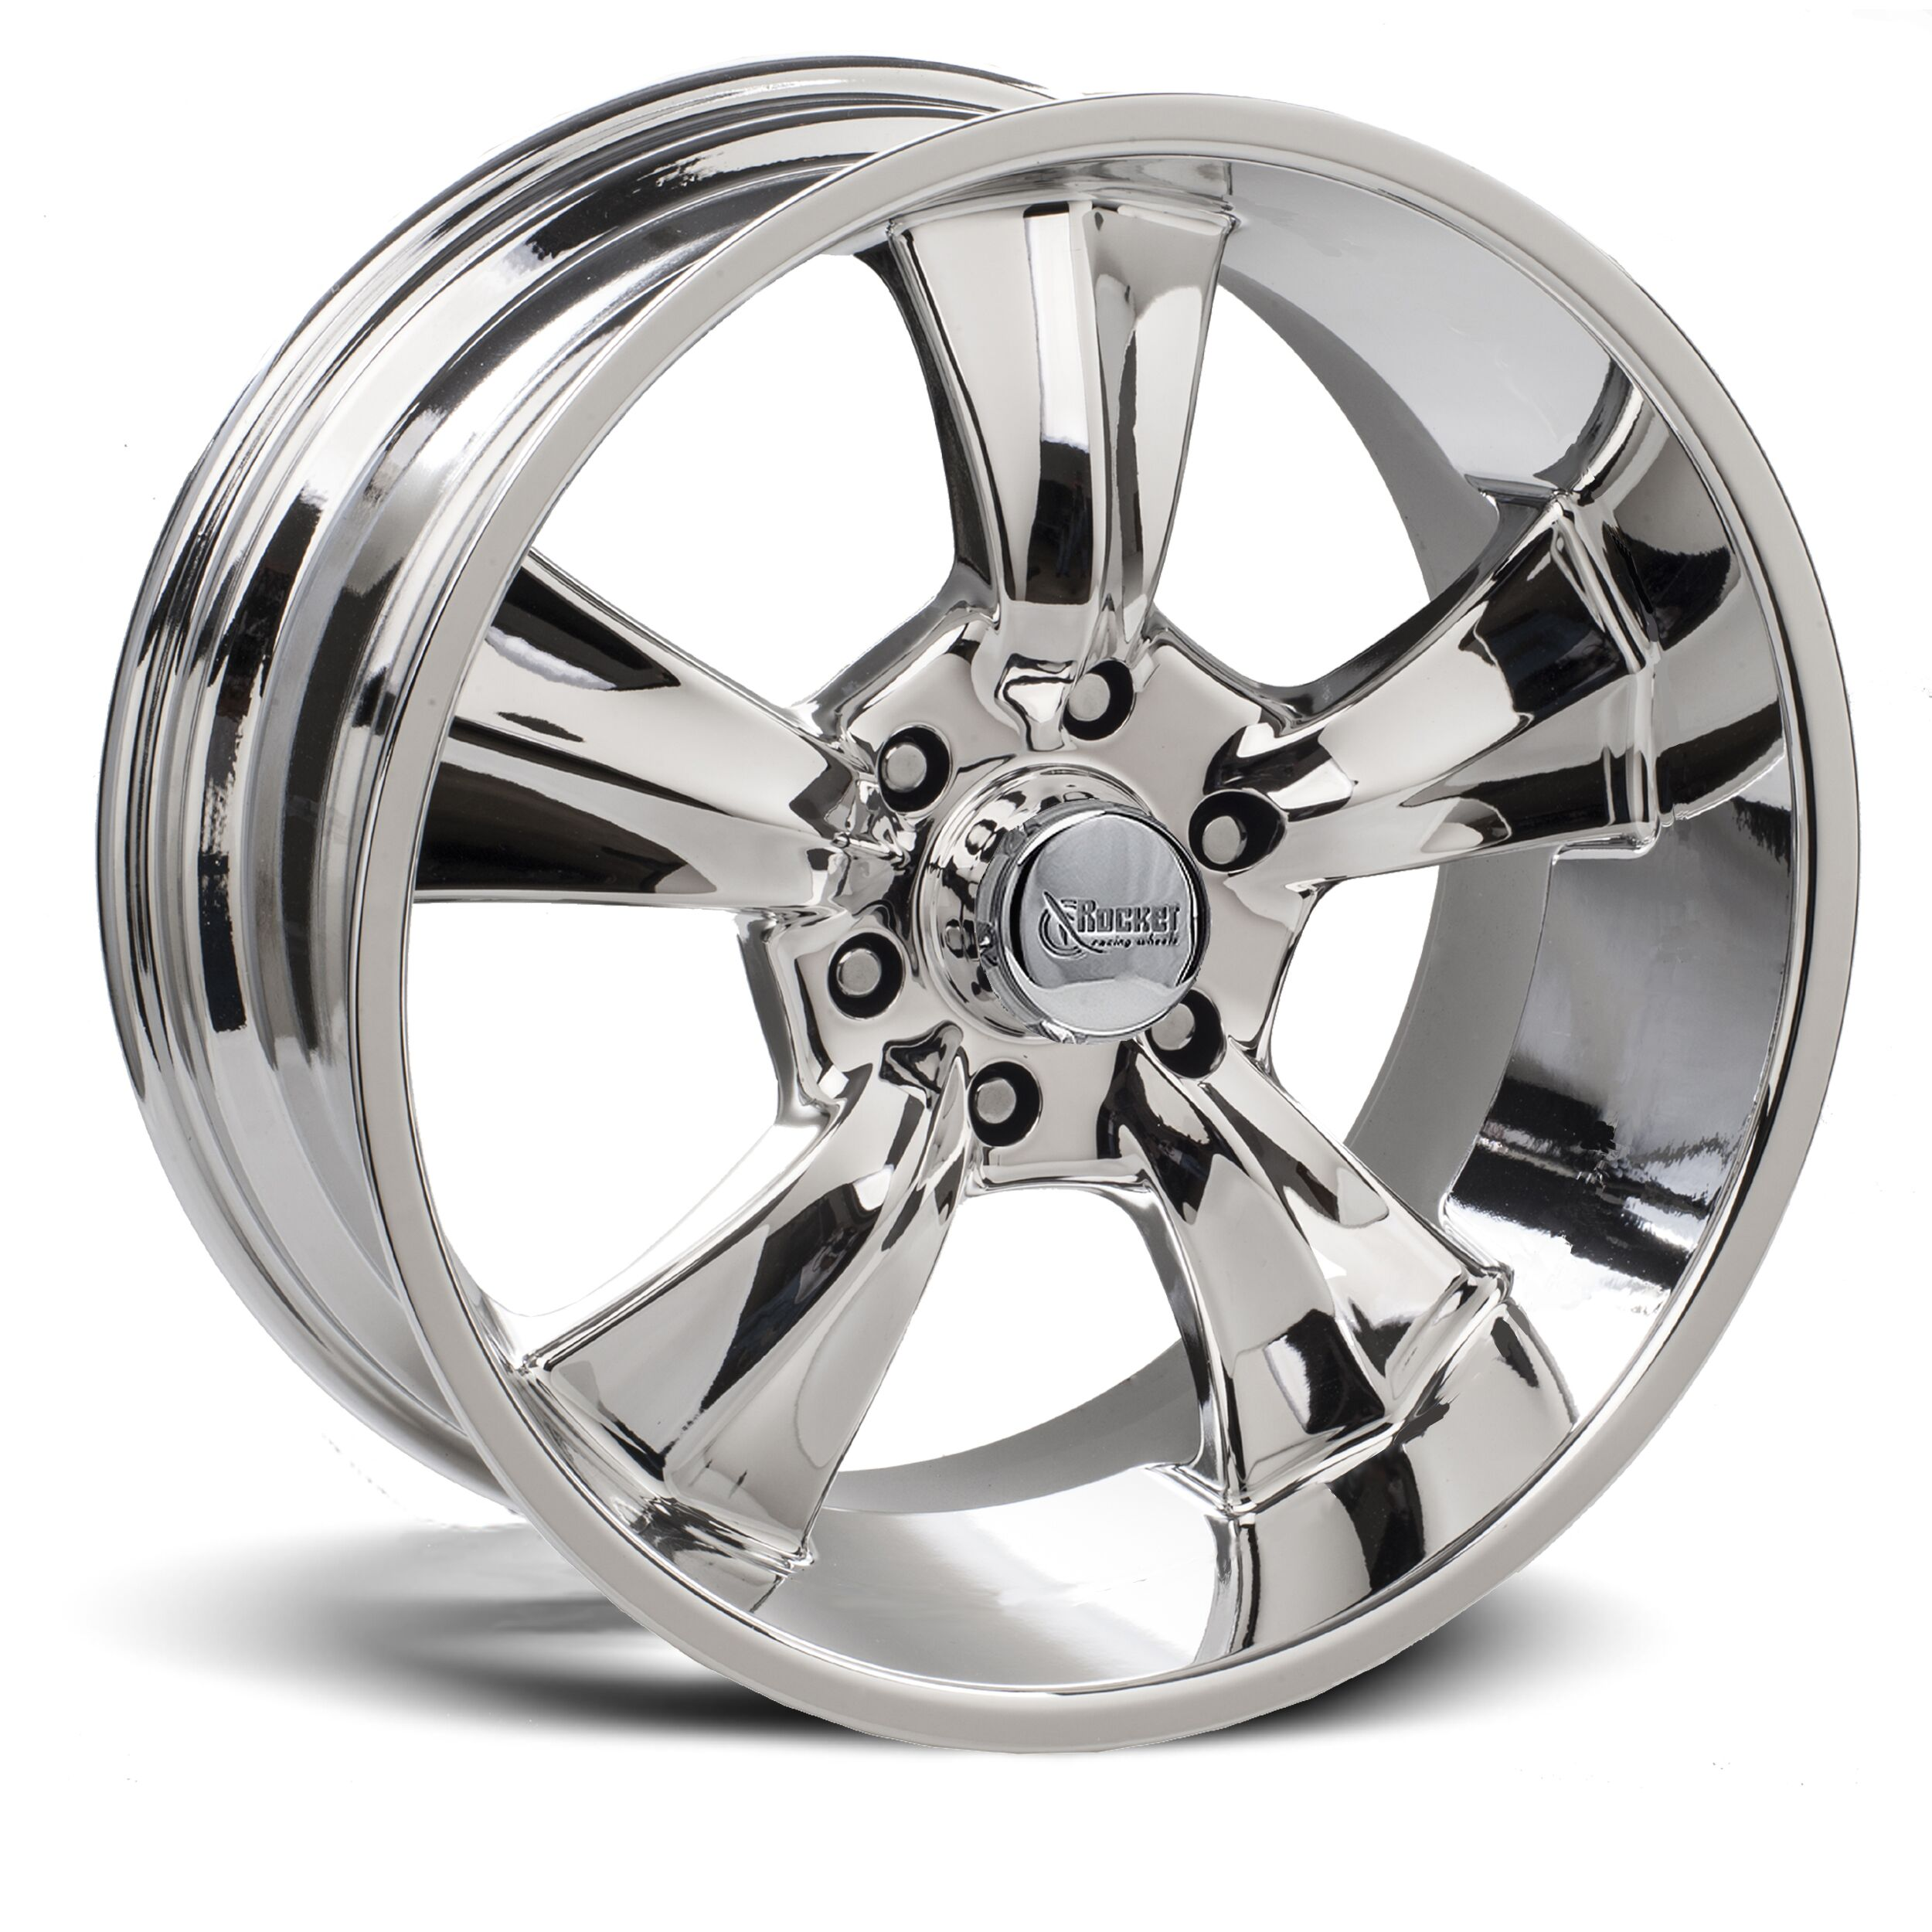 Rocket Racing Wheels Booster 6 - Chrome Rim